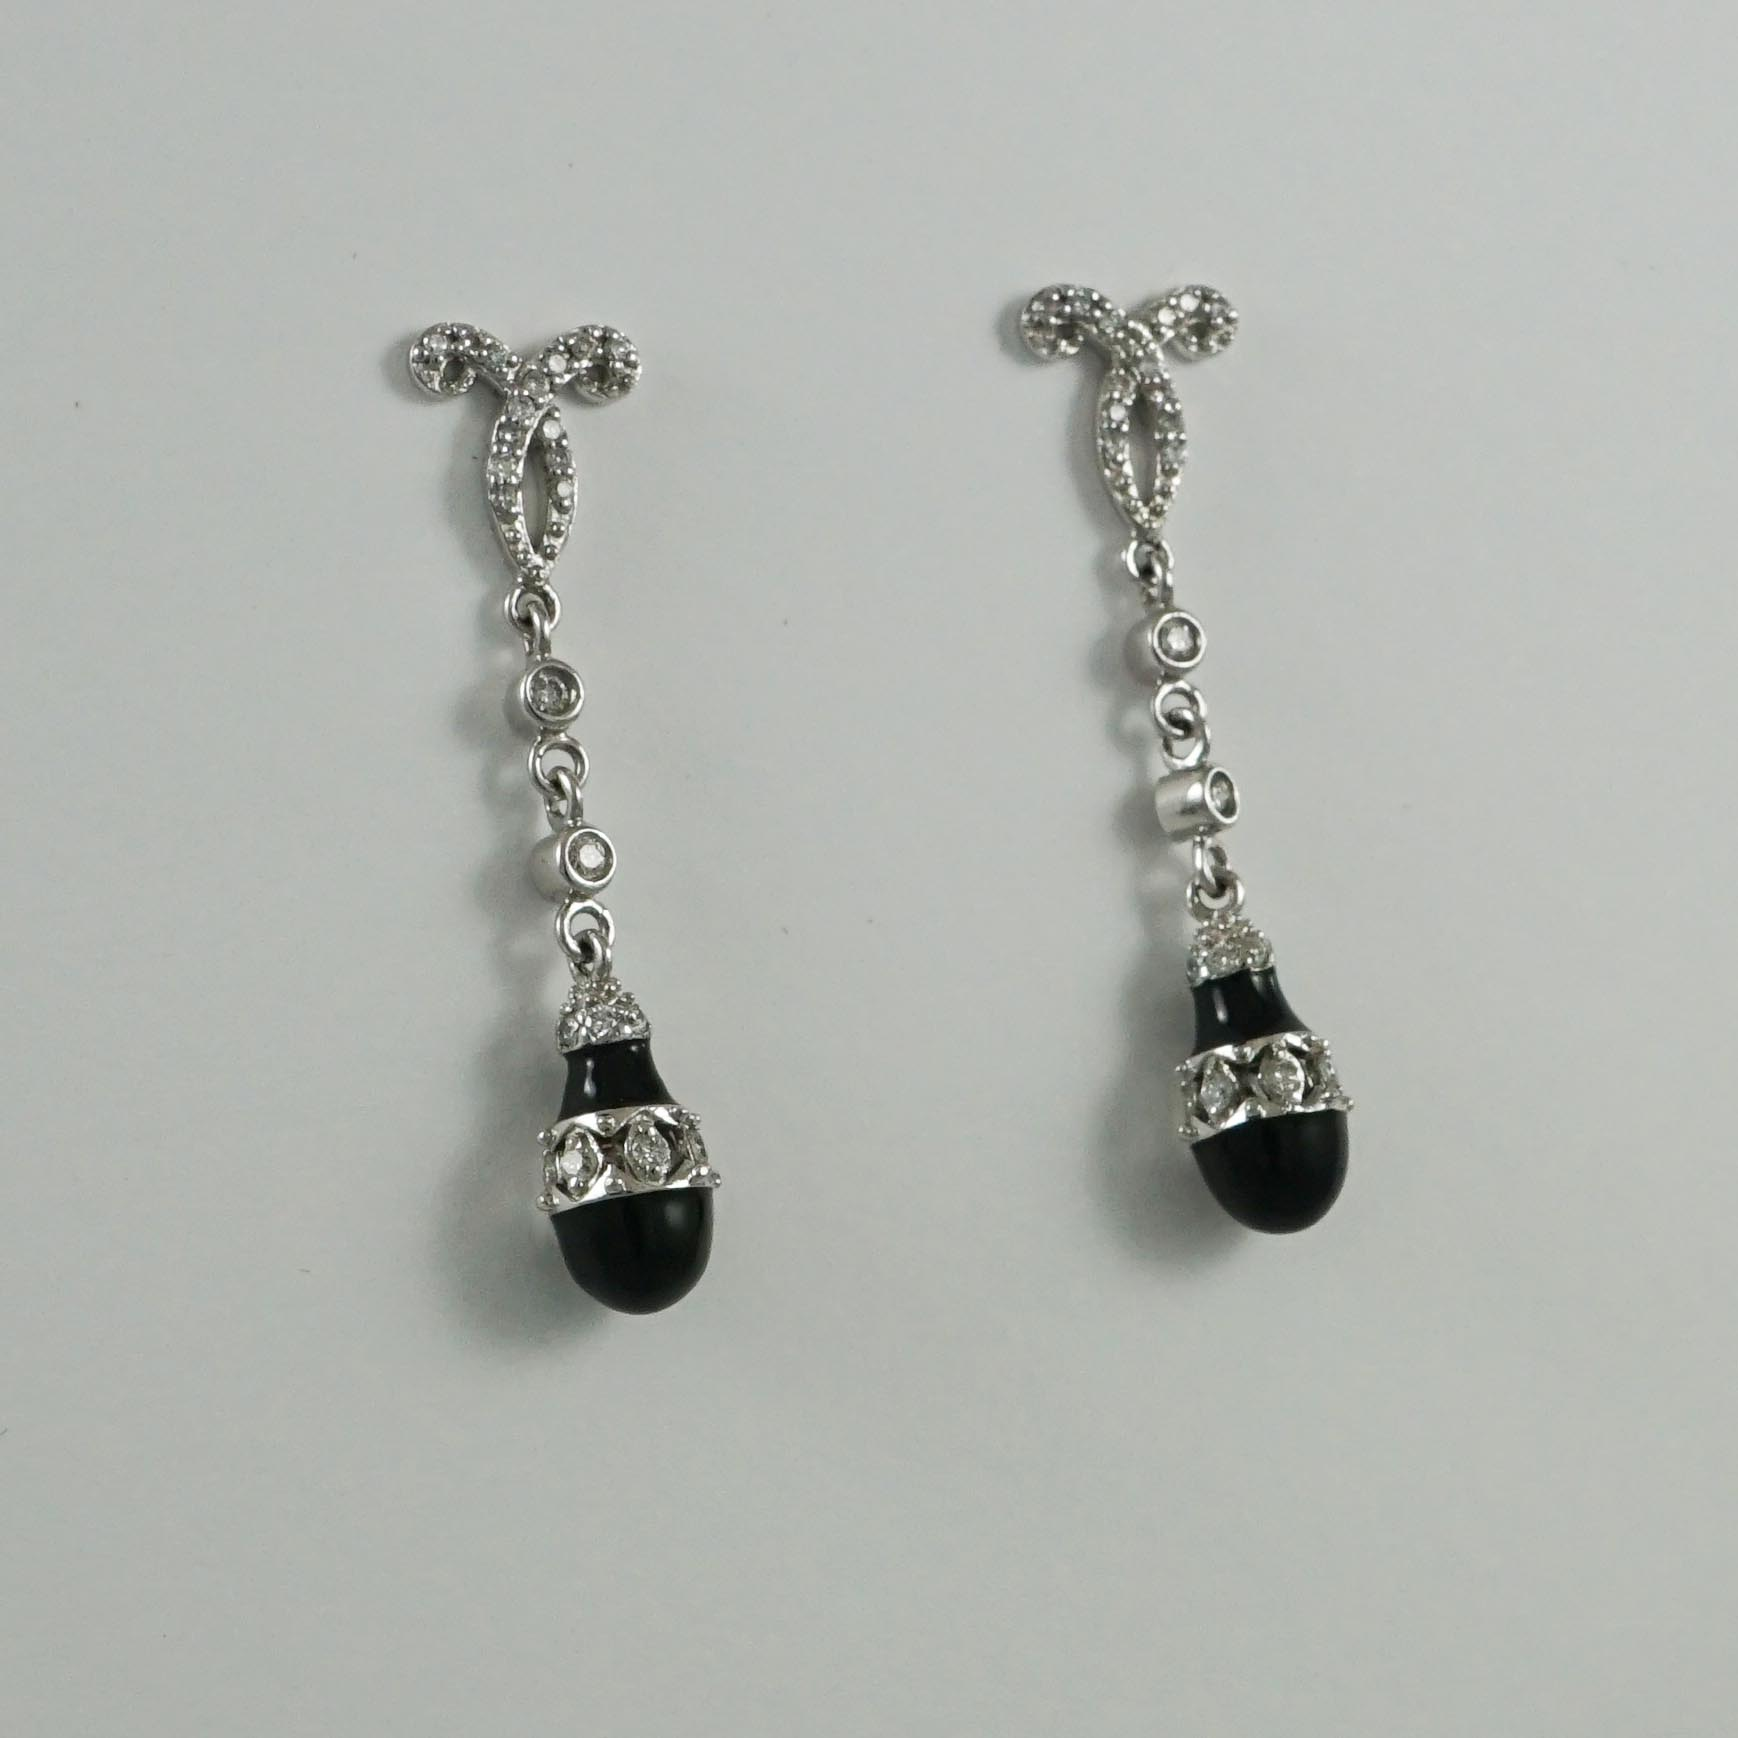 Art Deco Style Earrings Uk Art Deco Style Onyx Diamond Drop Earrings 9ct White Gold